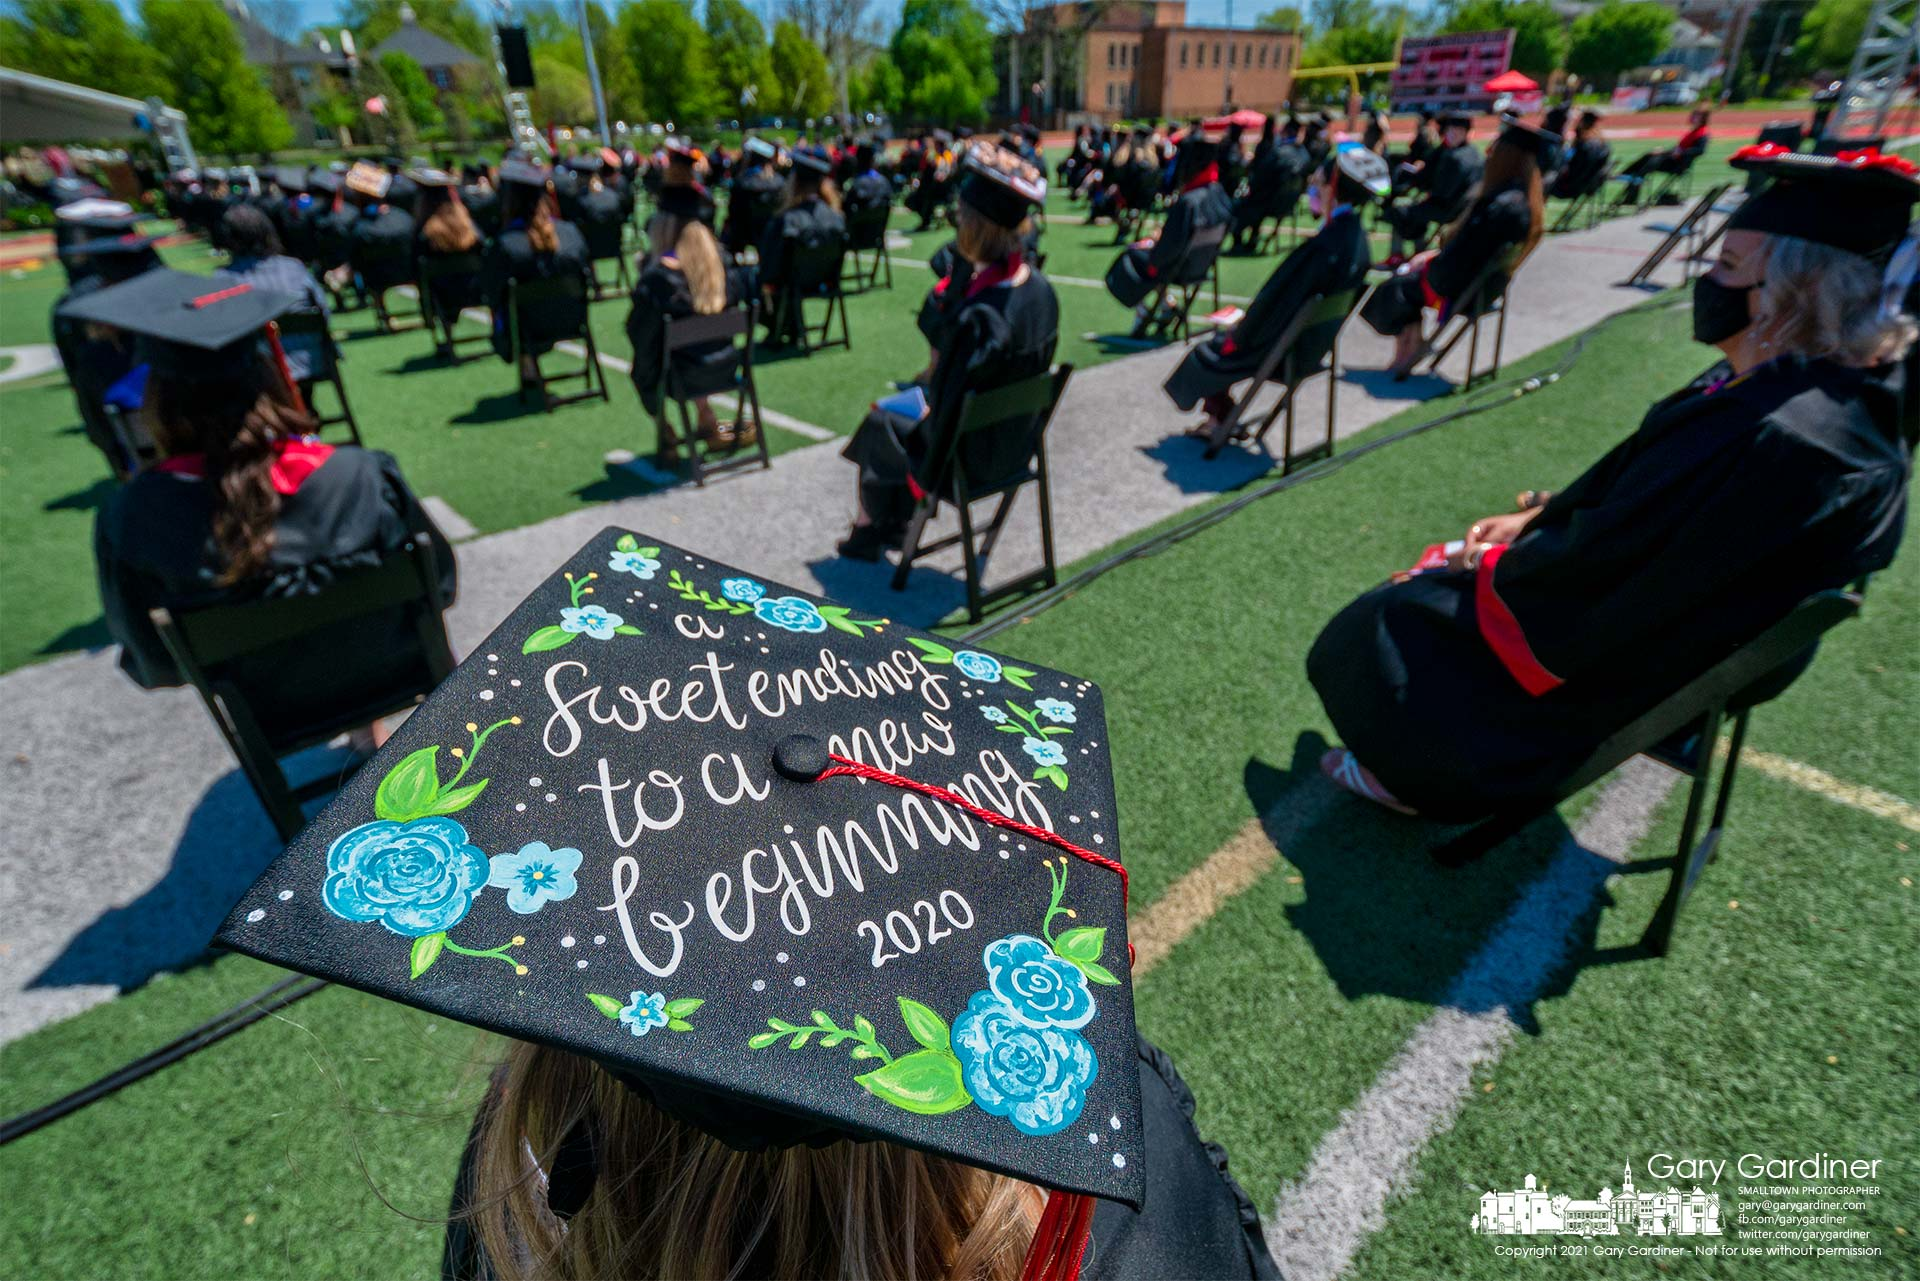 An Otterbein 2020 graduate wears a delayed message of hope during commencement ceremonies Saturday after a delay from last year due to the pandemic. My Final Photo for May 1, 2021.